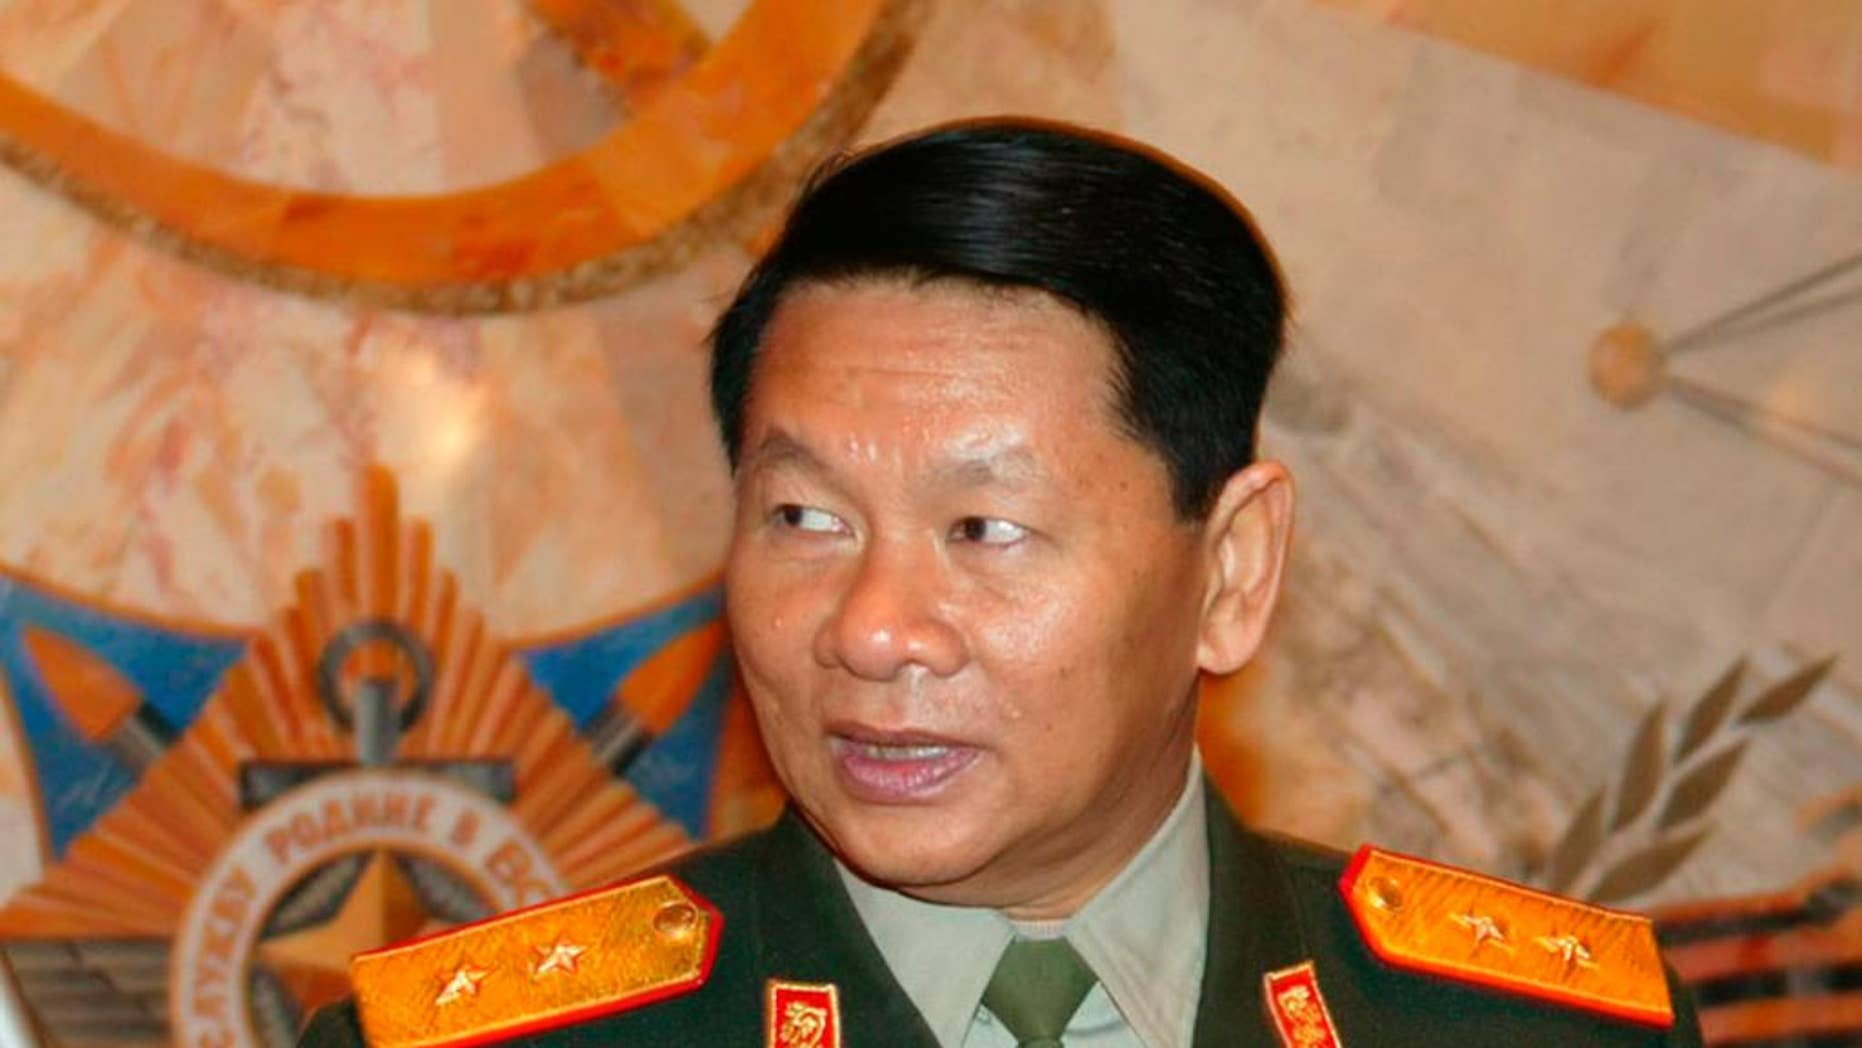 FILE - Laotian Defense Minister, Douangchay Phichit, is seen during a visit to Moscow in this Tuesday, April 27, 2004 file photo. A Laos air force plane believed to be carrying 20 people including the country's defense minister crashed on Saturday May 17, 2014, Thailand's Foreign Ministry said.  (AP Photo/File)